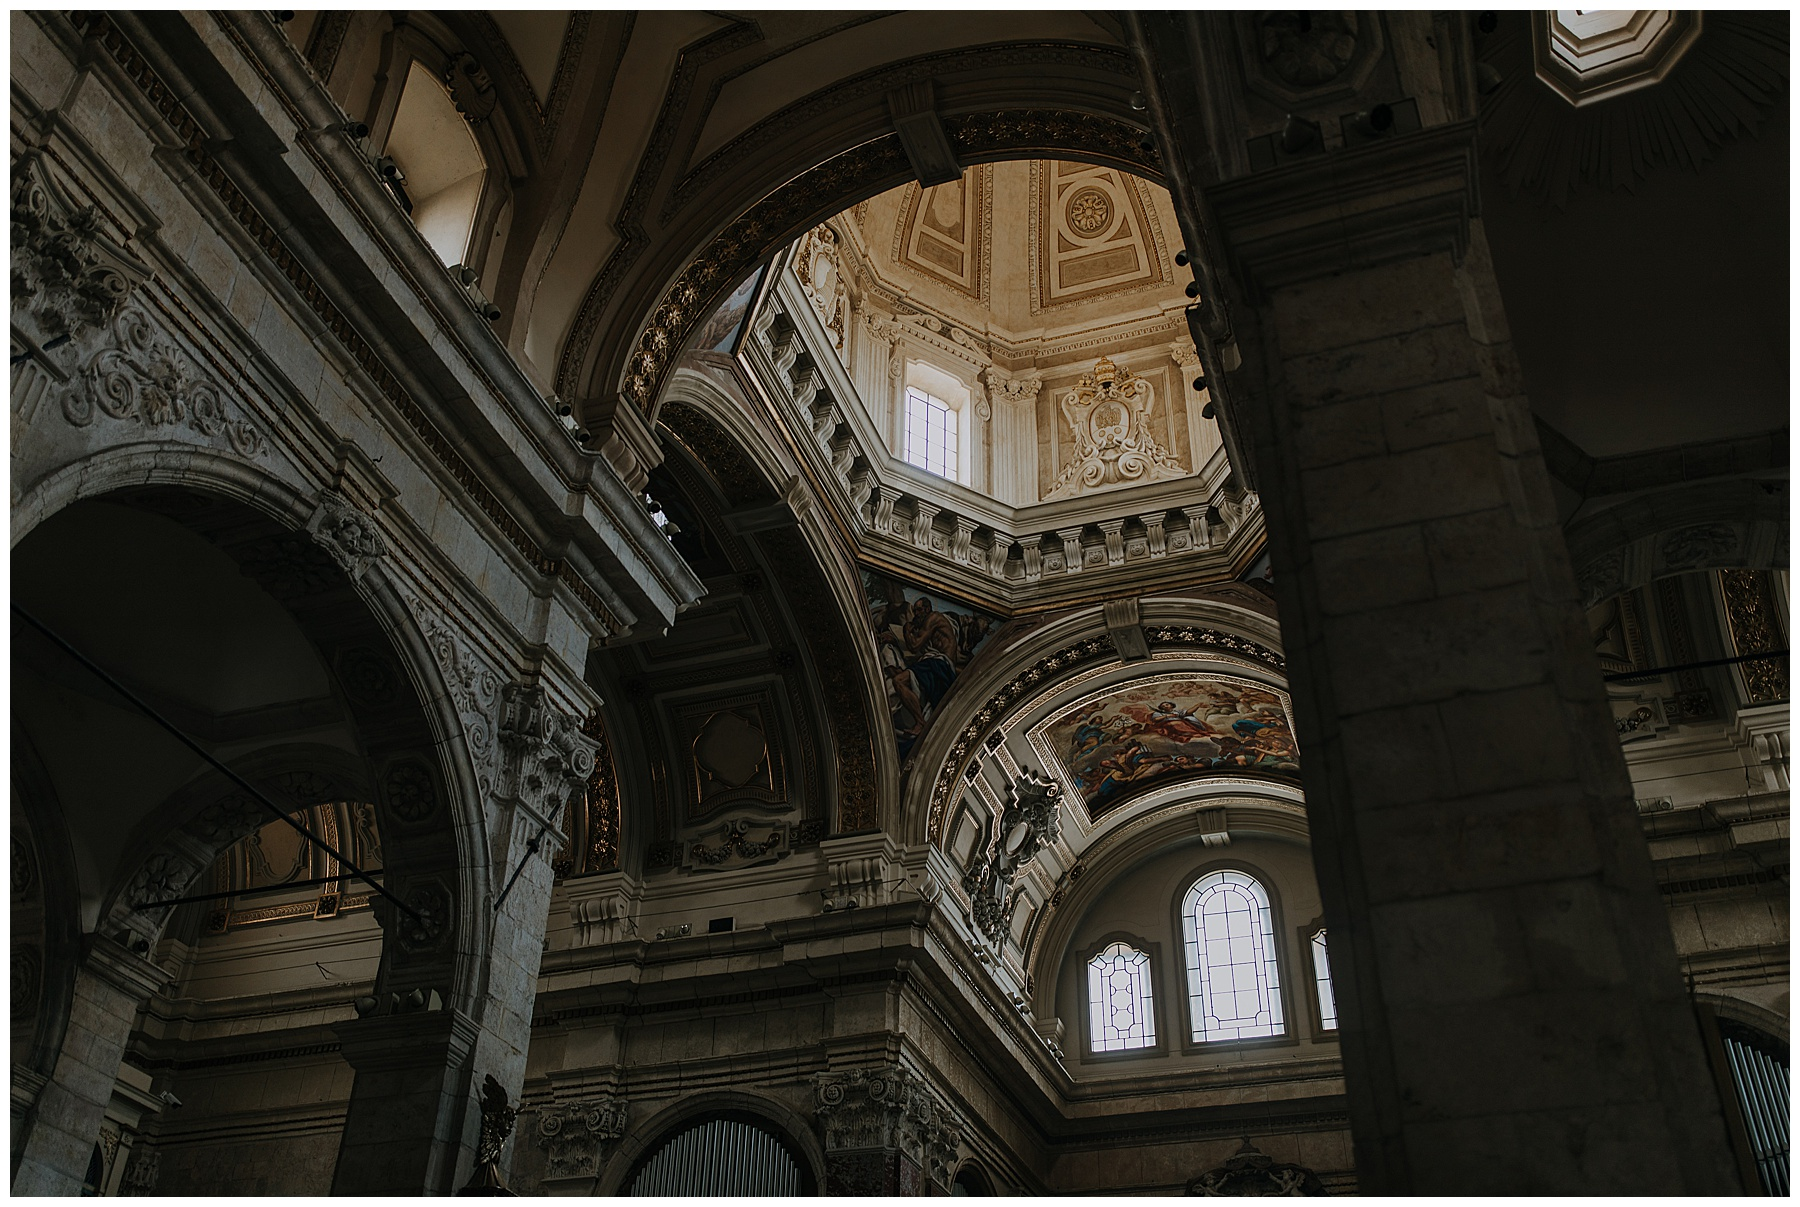 architectural inside of an Italian church